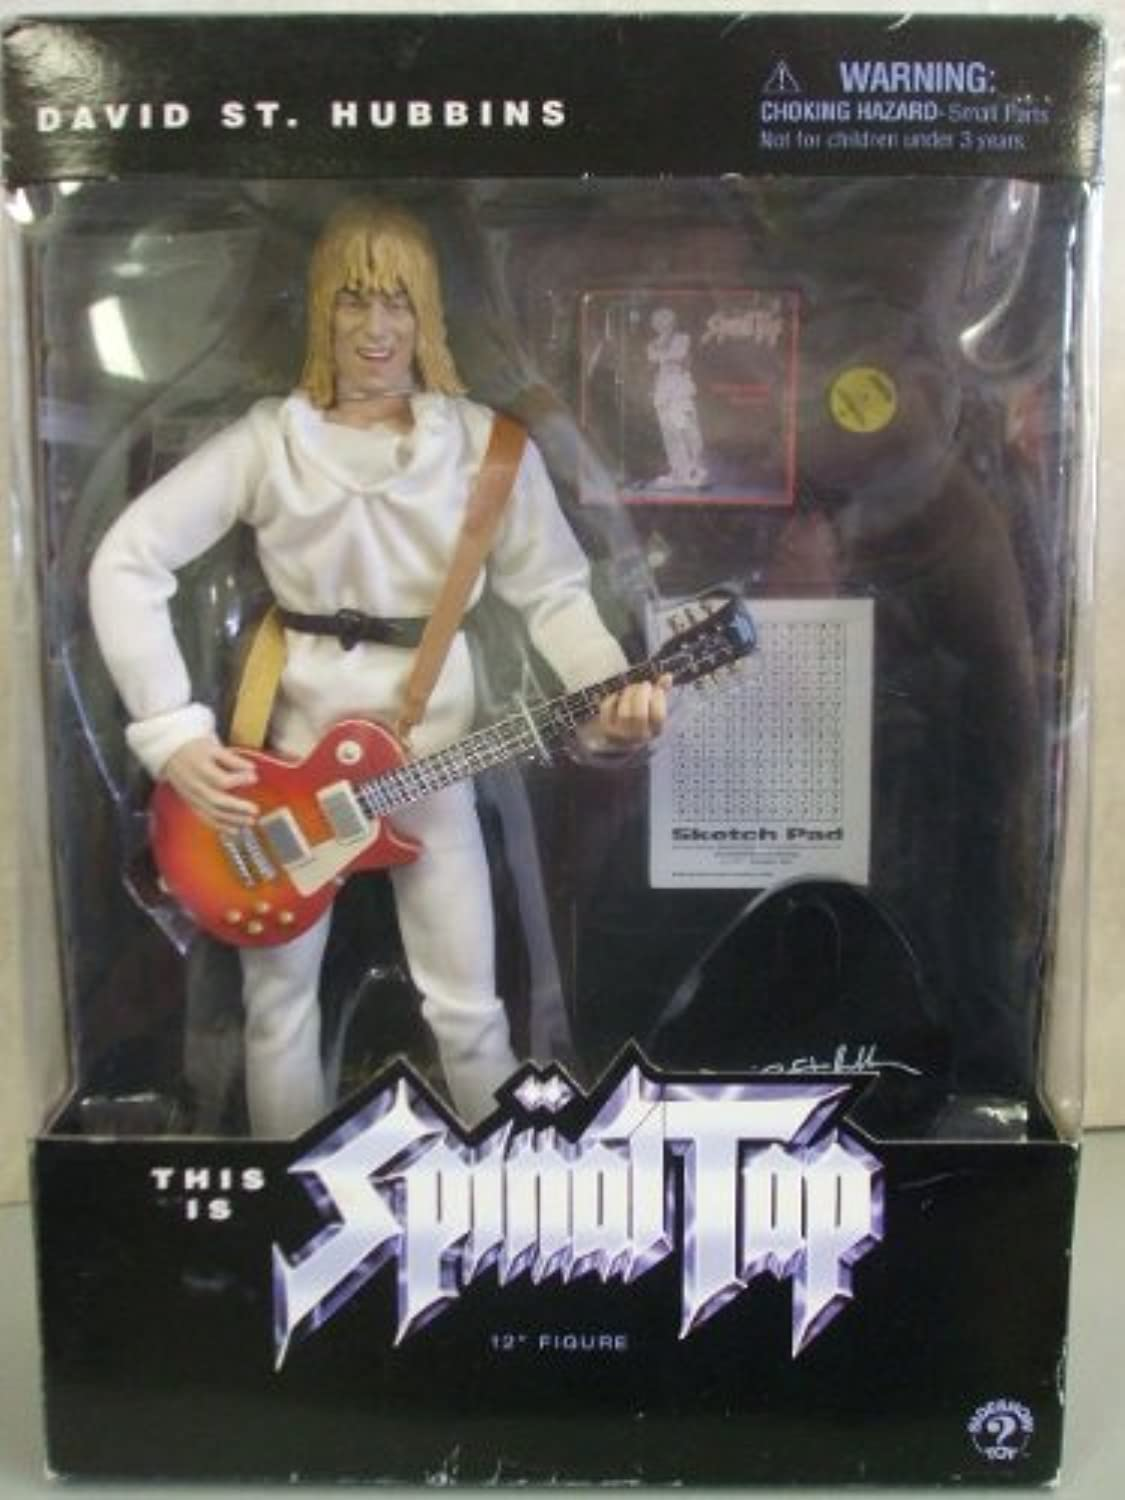 Spinal Tap 12 inch David St. Hubbins figure